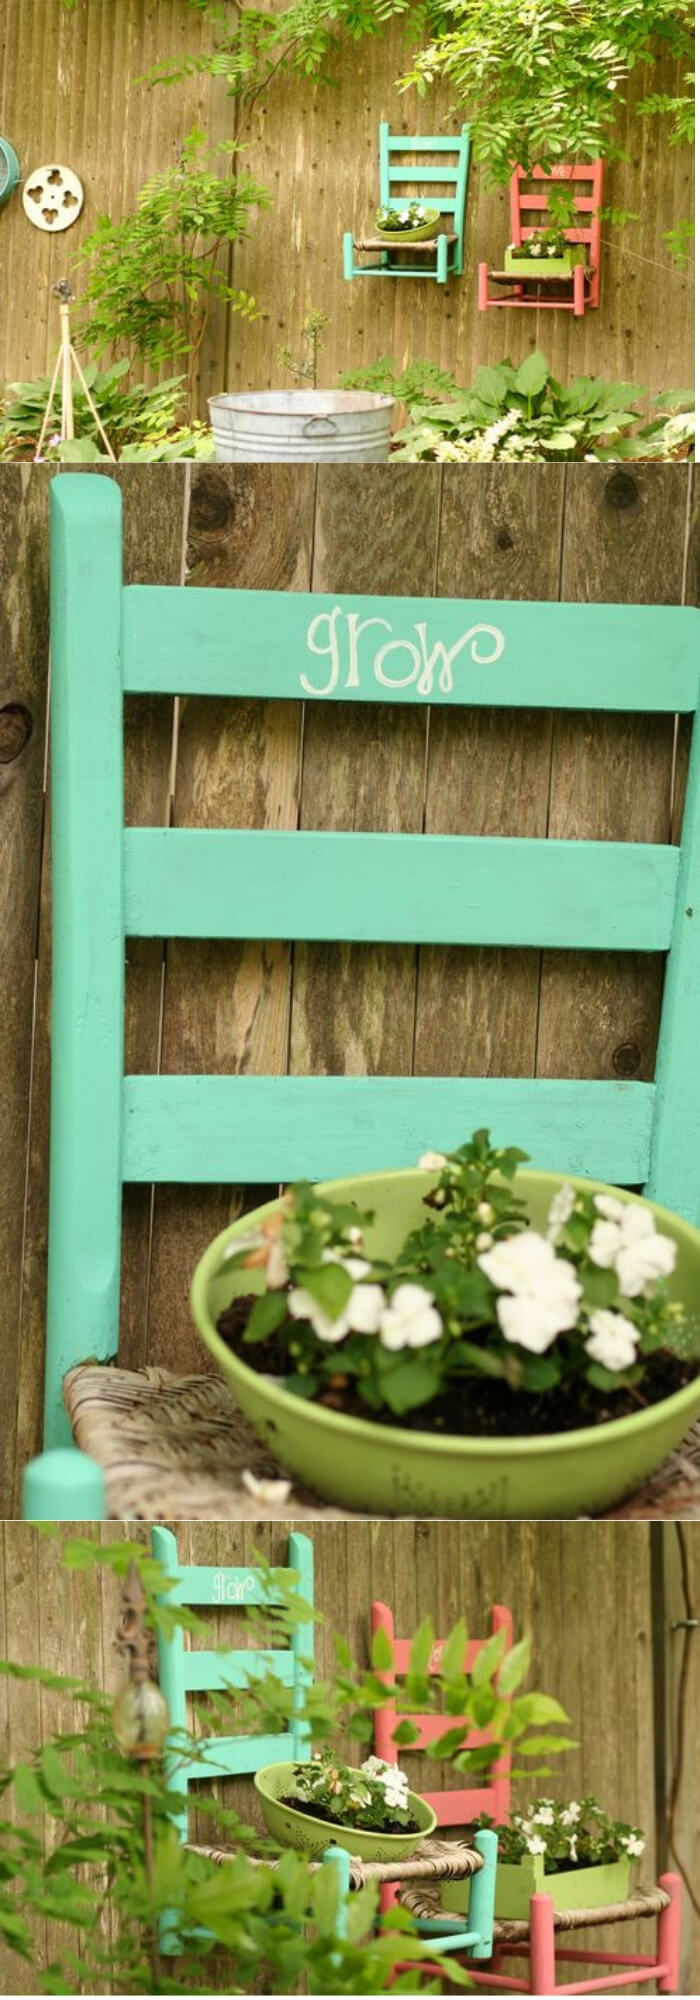 Hanging Chair Planter   Creative Upcycled DIY Chair Planter Ideas For Your Garden